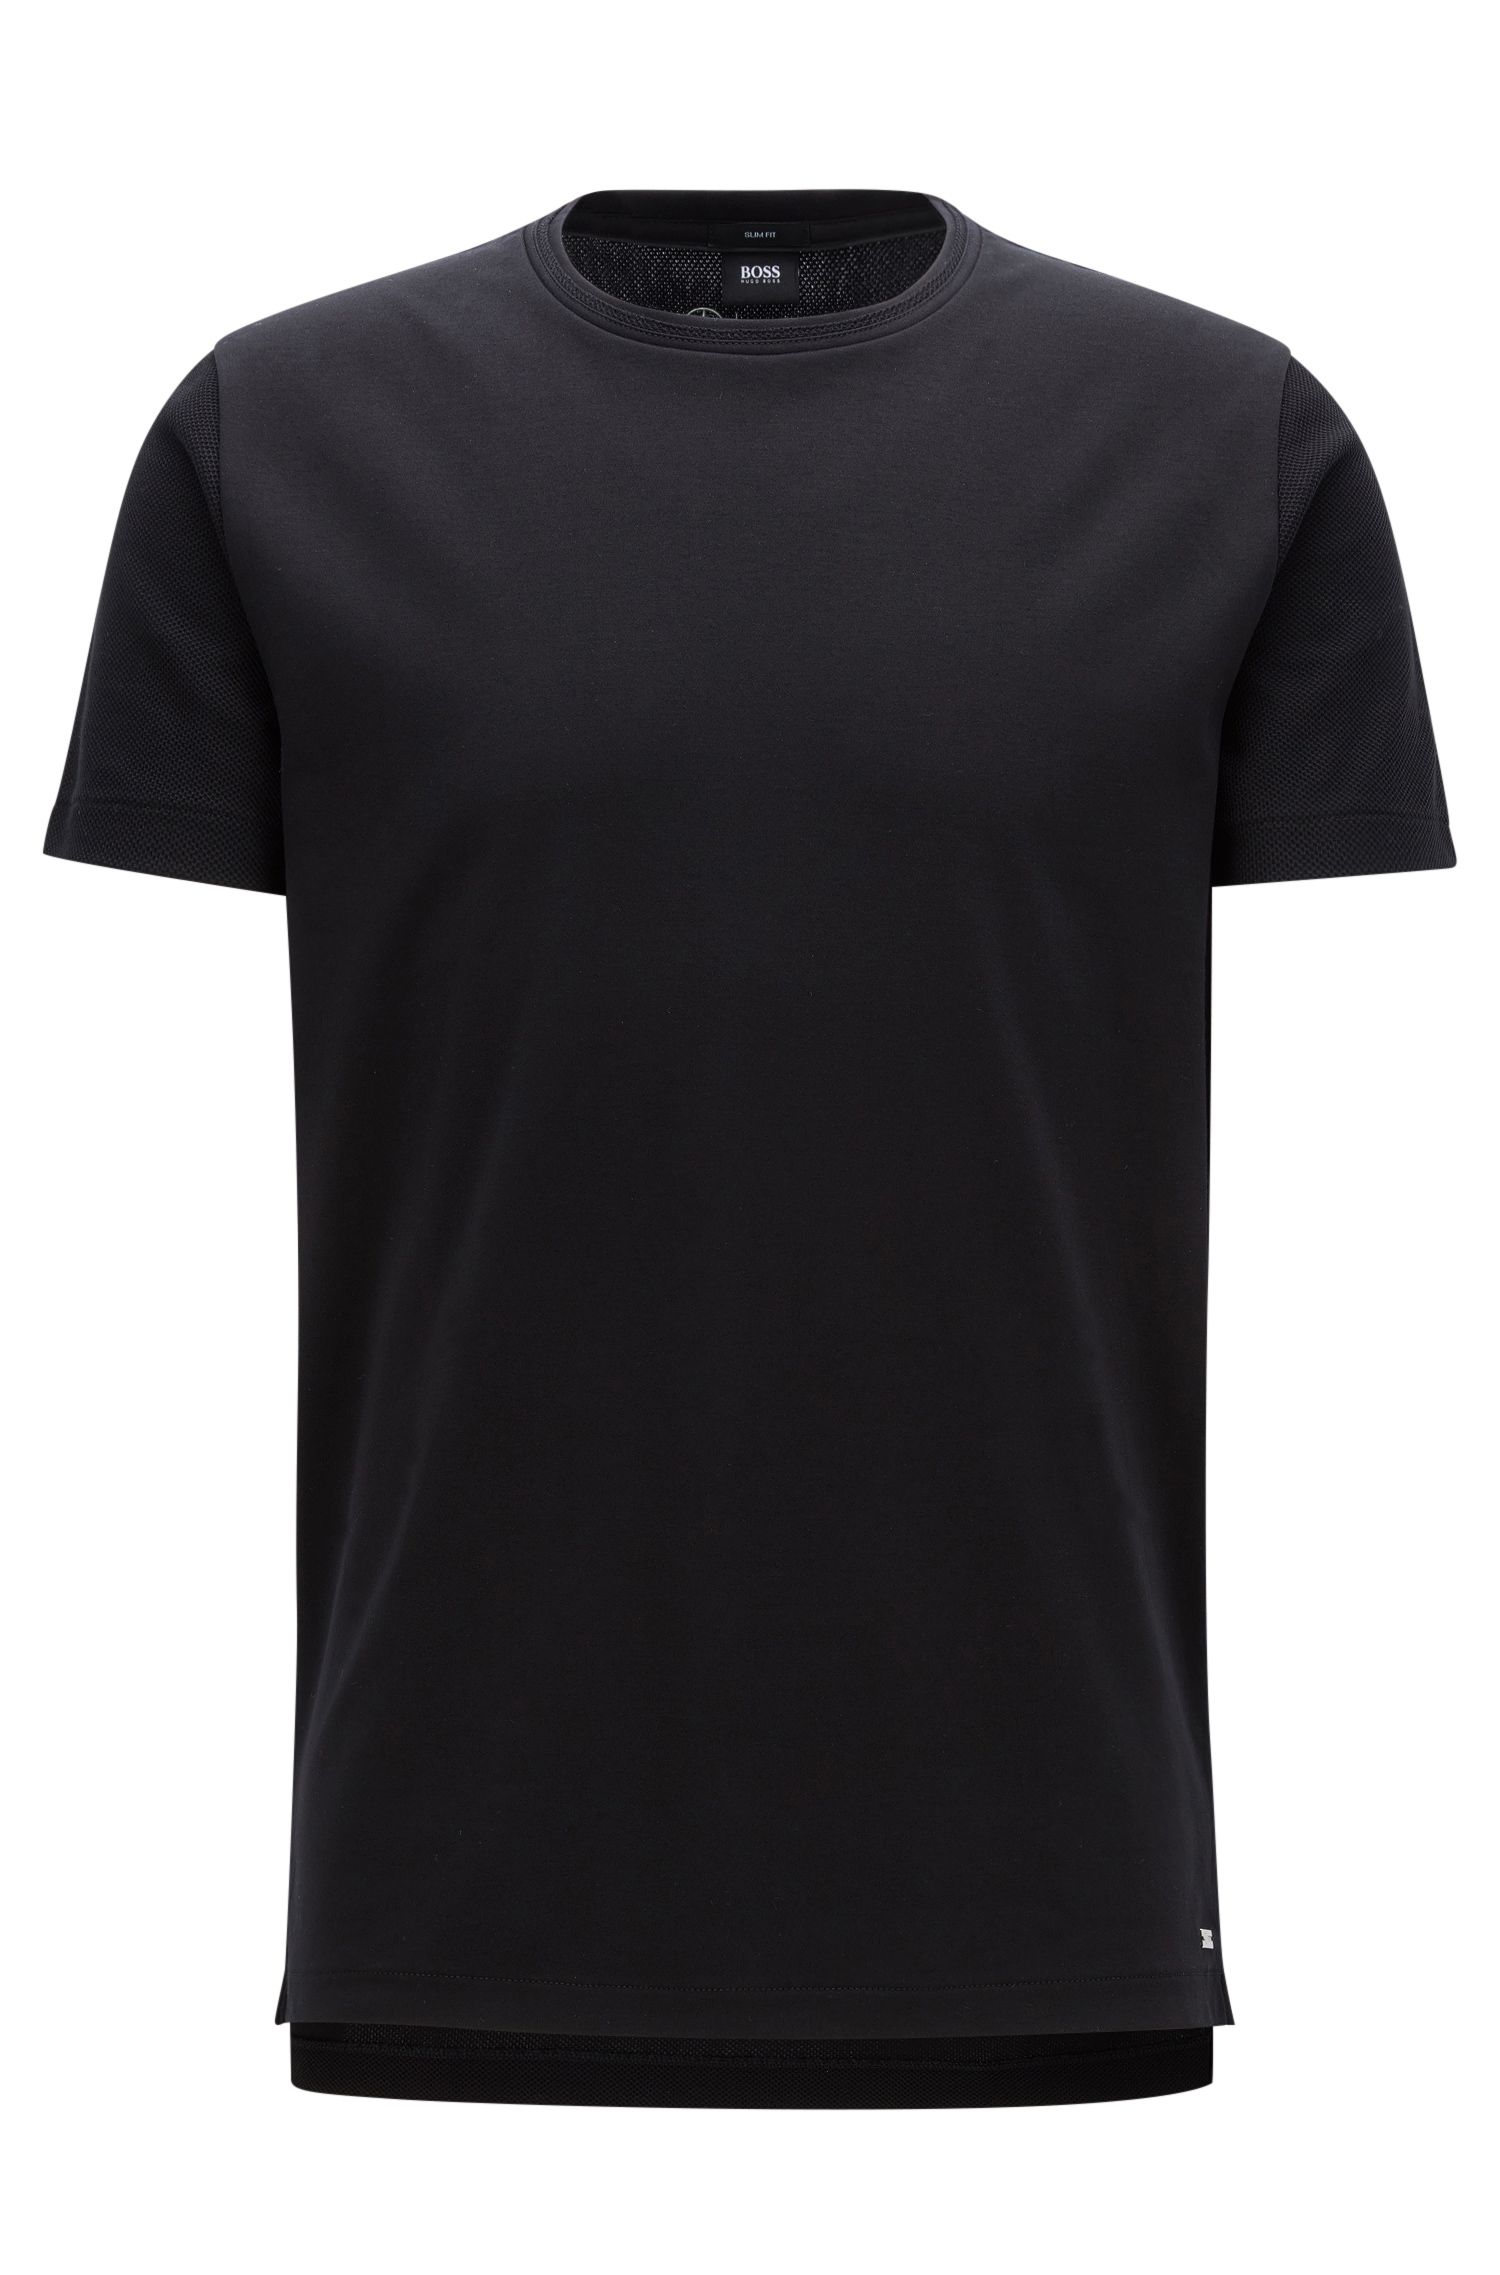 Slim-Fit T-Shirt aus Baumwolle aus der Mercedes-Benz Kollektion